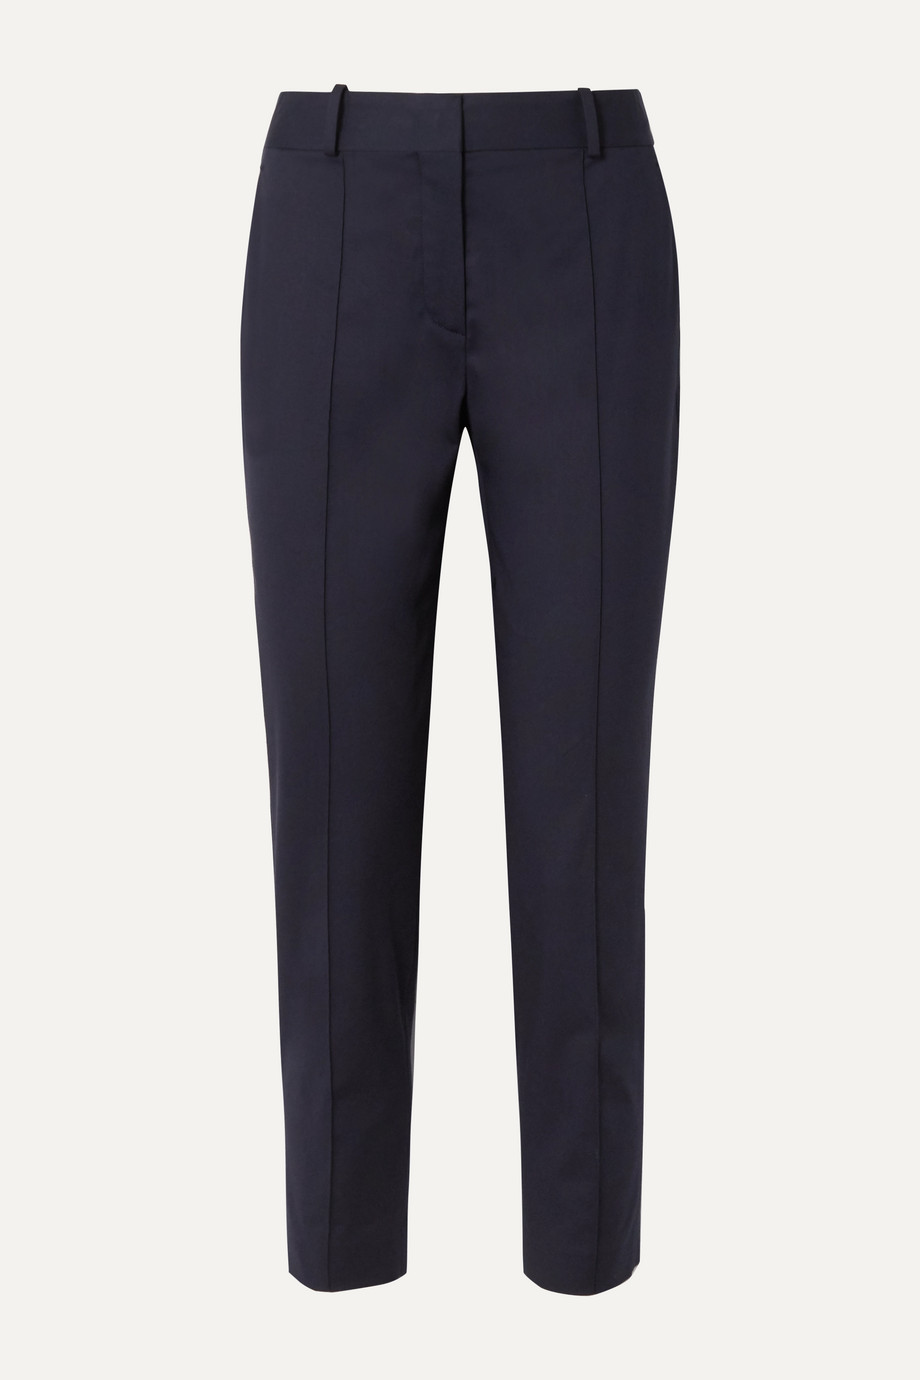 Loro Piana Stretch-cotton twill straight-leg pants